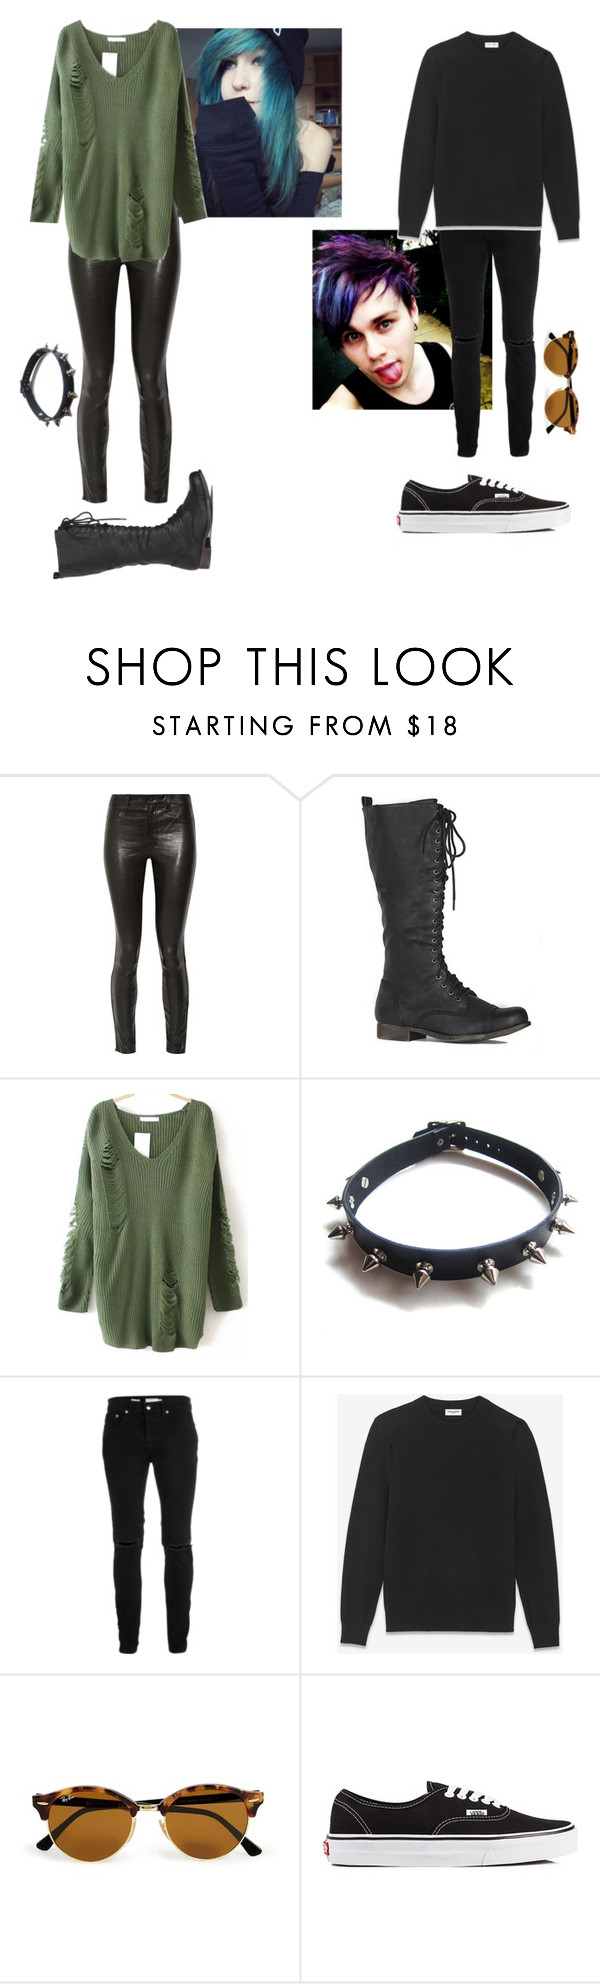 """The Campbell Siblings (pt 1)"" by depressed-music-lover ❤ liked on Polyvore featuring J Brand, WithChic, Topman, Yves Saint Laurent and Vans"